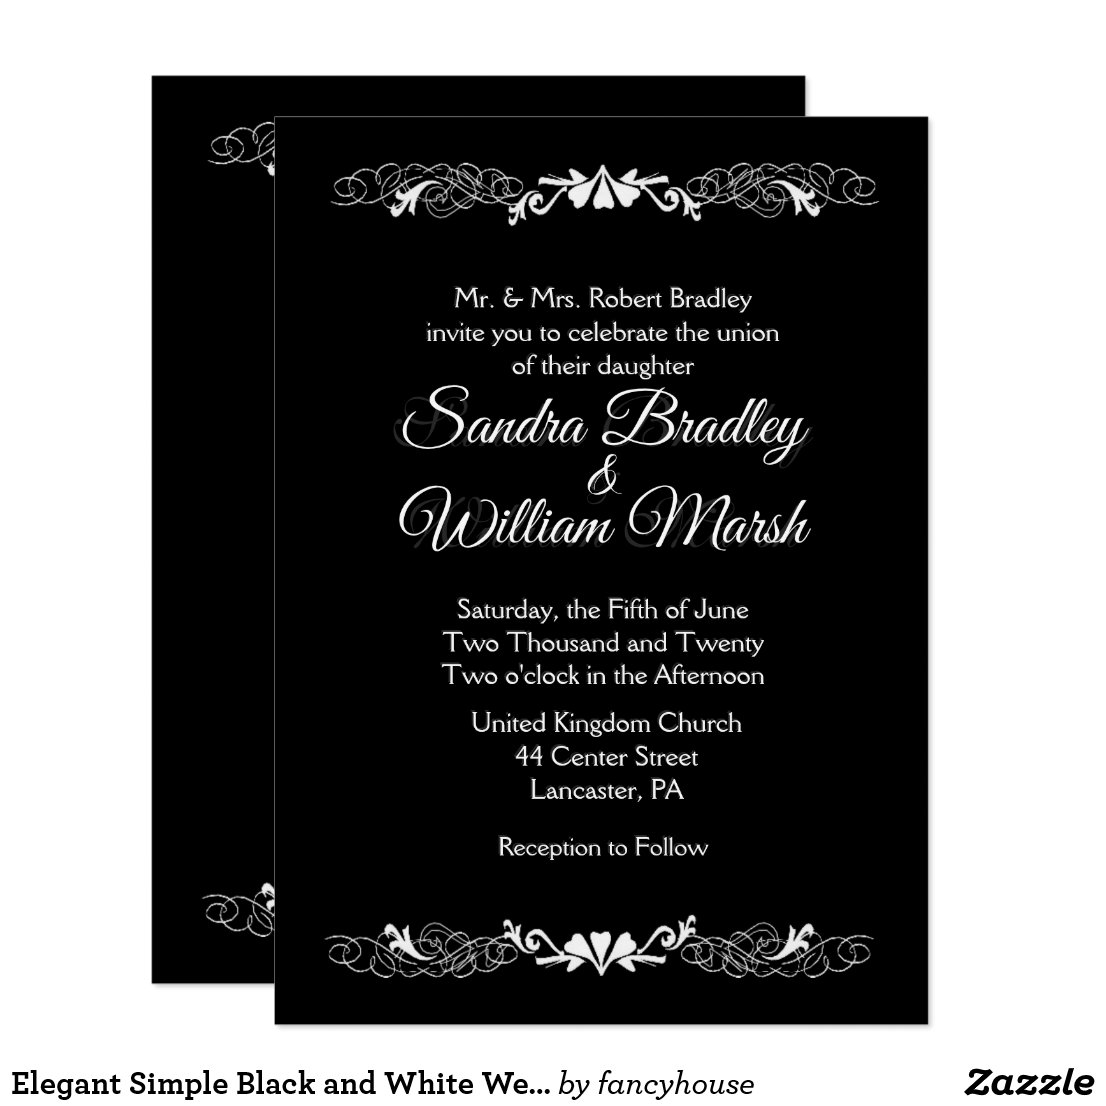 Elegant Simple Black and White Wedding Invitation